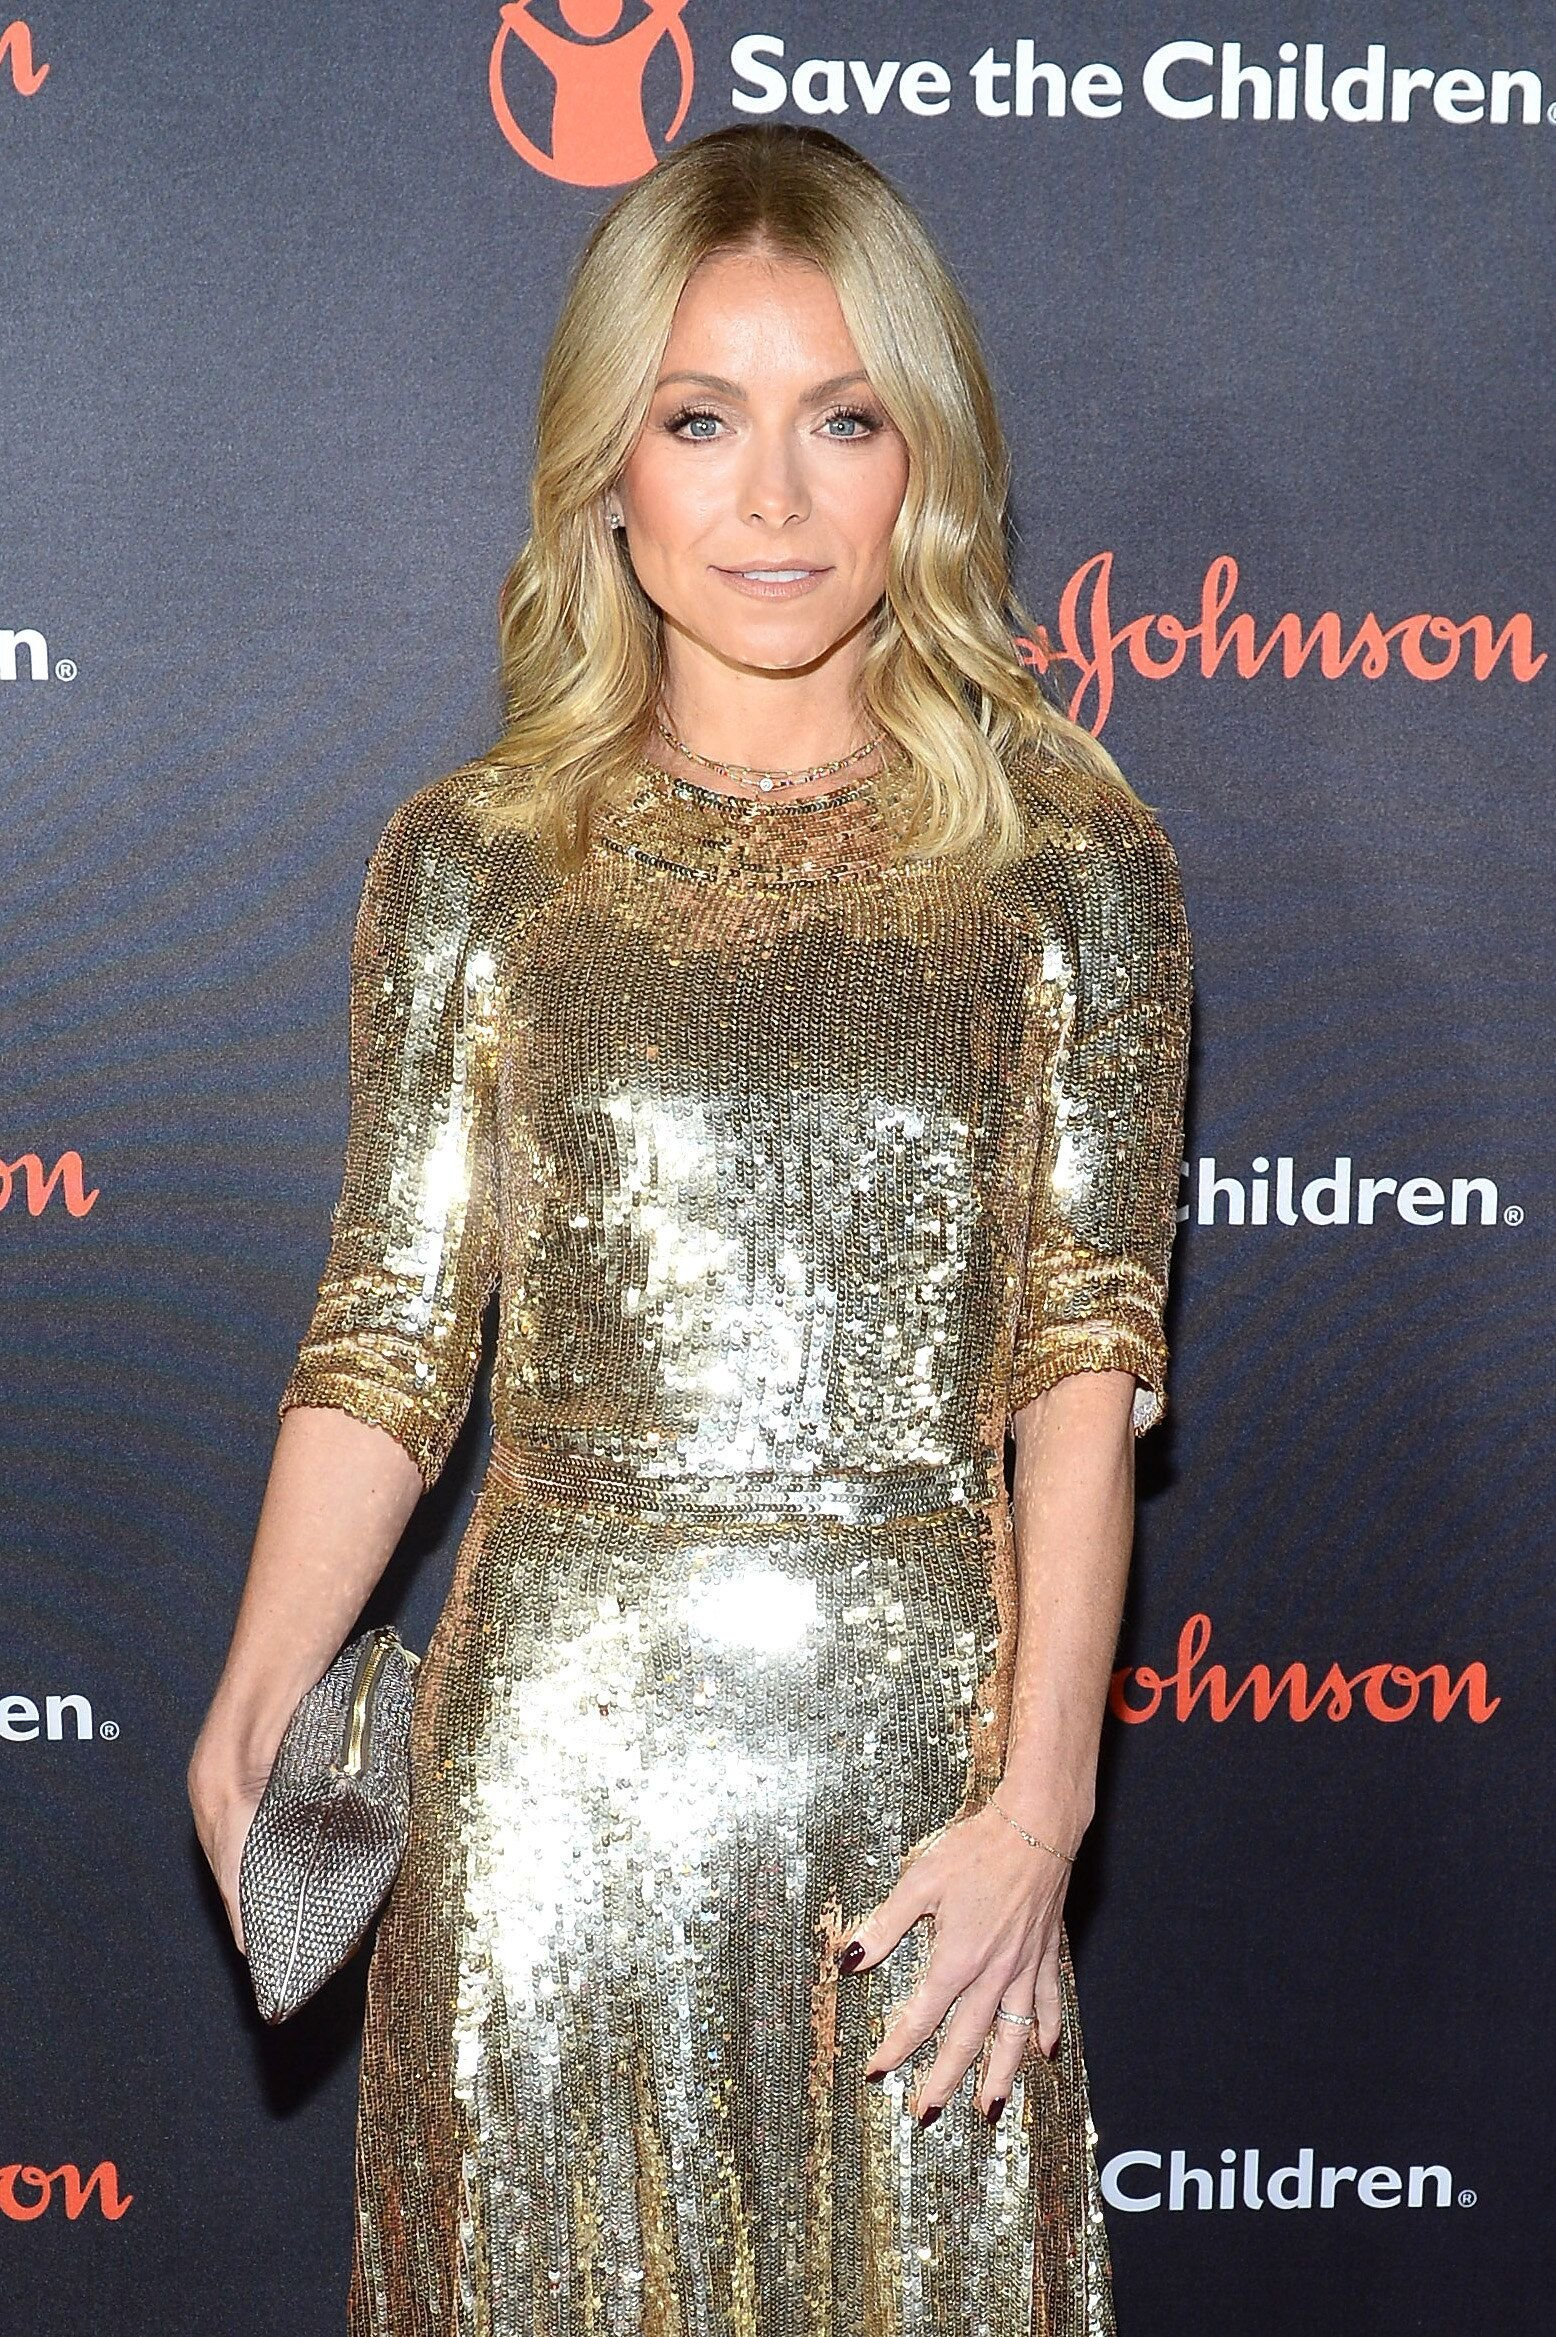 Kelly Ripa at the 6th Annual Save The Children Illumination Gala on November 14, 2018, in New York City | Photo: Getty Images